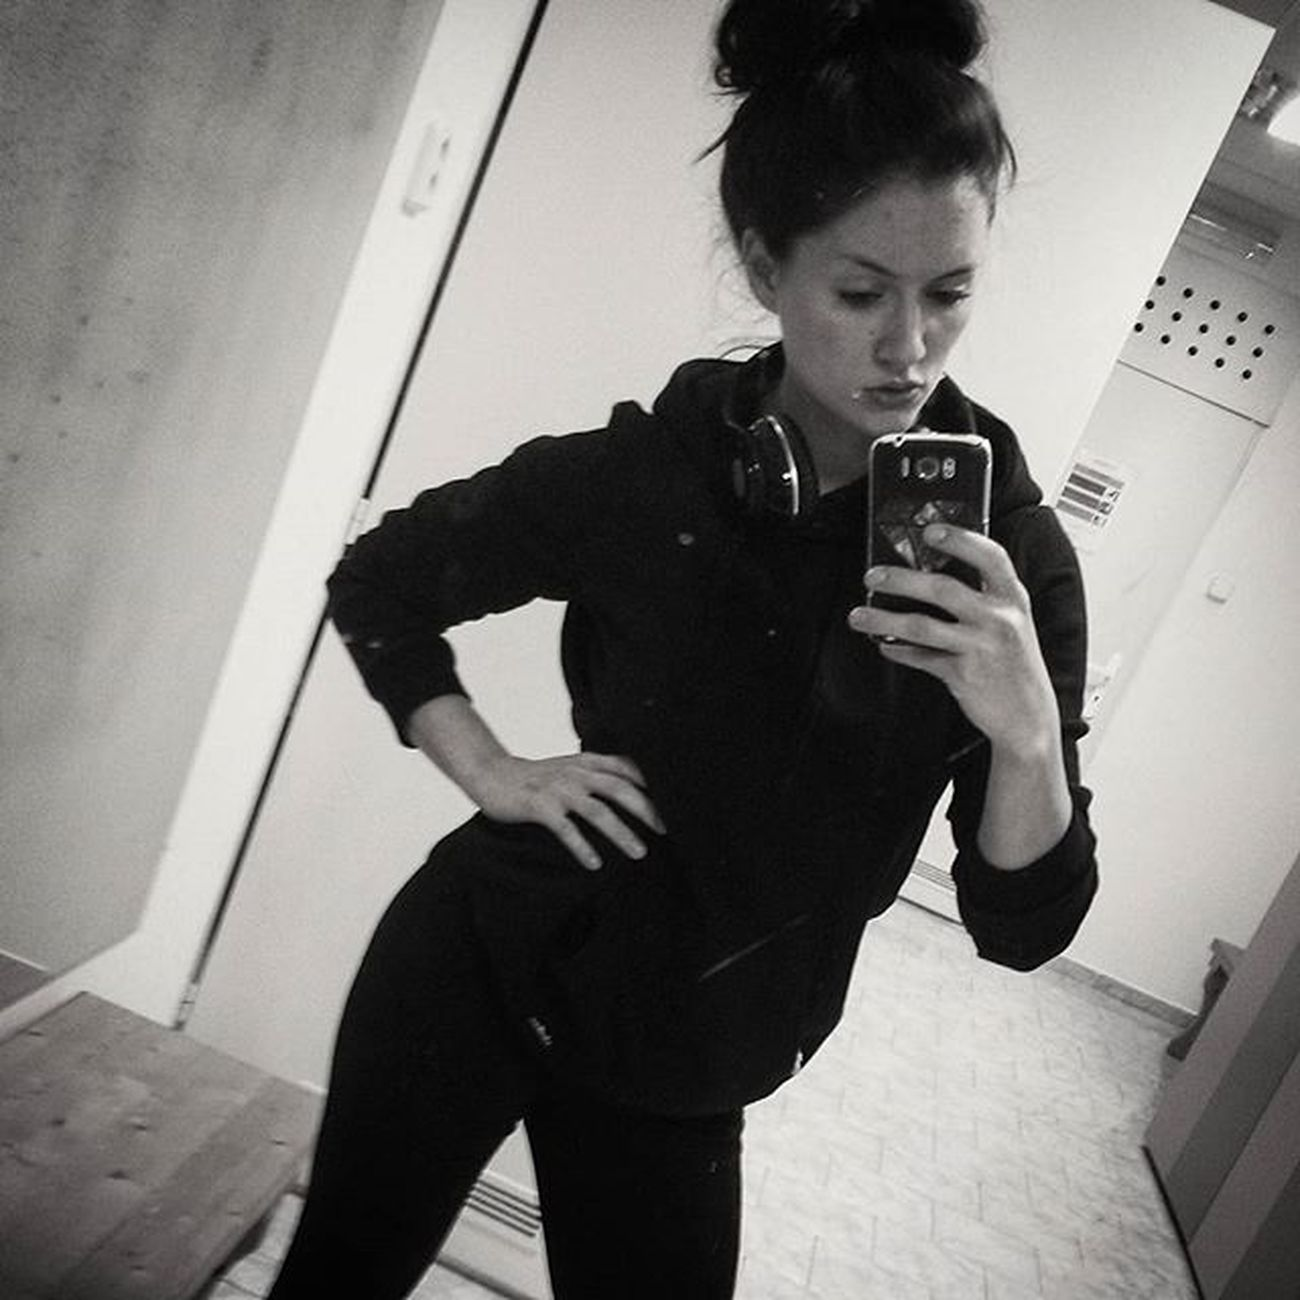 All Black Me Czechgirl Czech Girl Brunette Liberec Gym Fitmexx Love Fitness Lifestyle Instafit Fitgirl Music Beatsbydre BEATS Bodybuilding Body Is Your Masterpiece Health Muscle mirror pic follow the progress